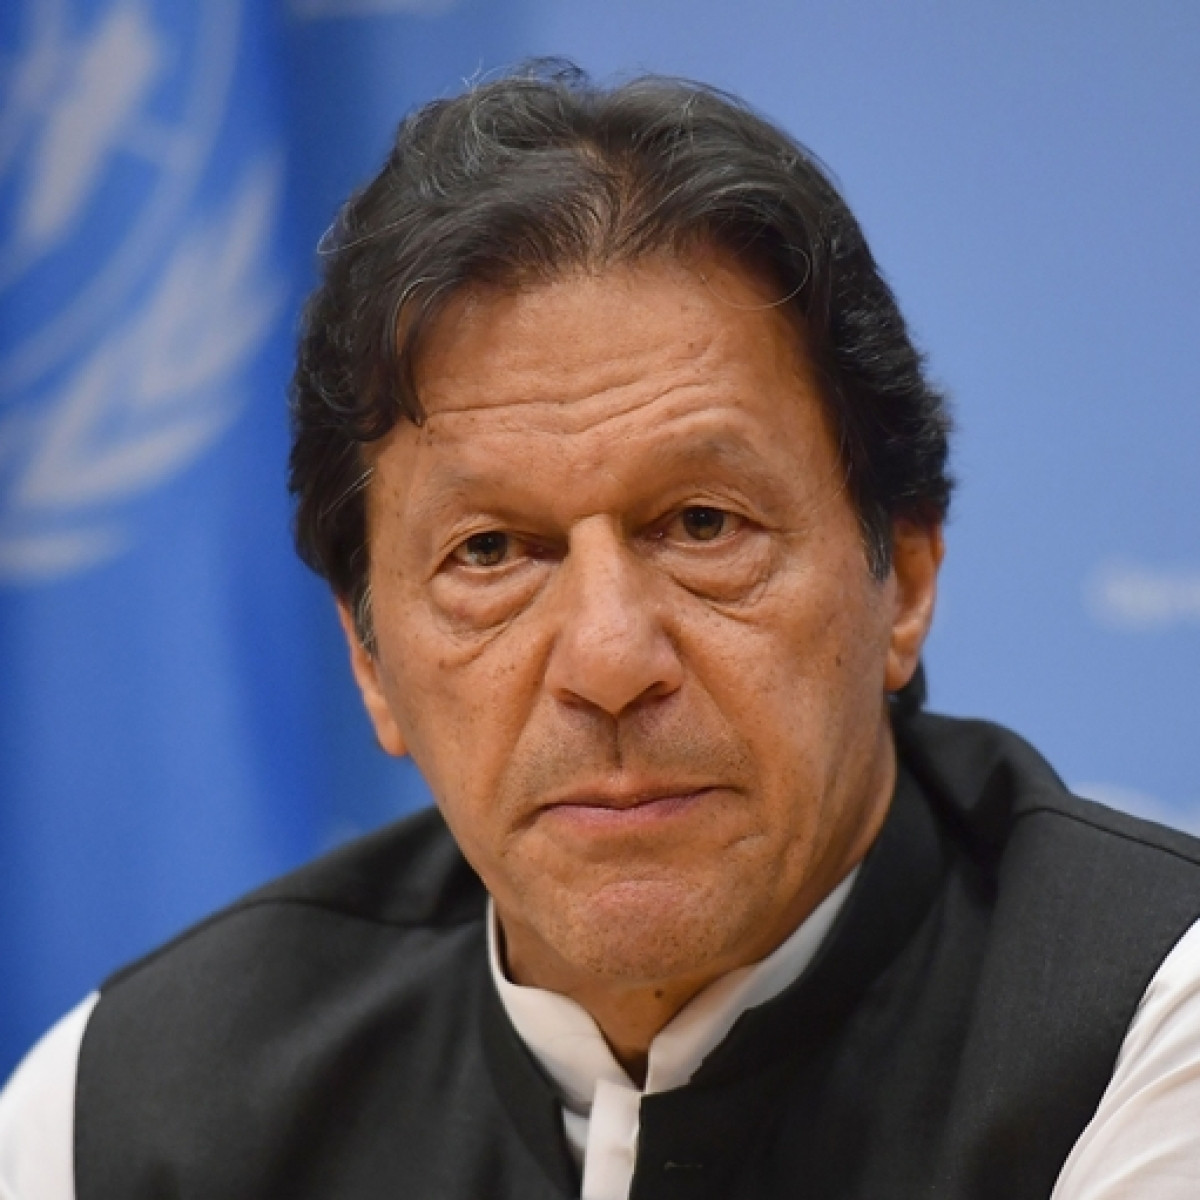 Pakistan PM Imran Khan's party suspends leader for posters insulting Hindus